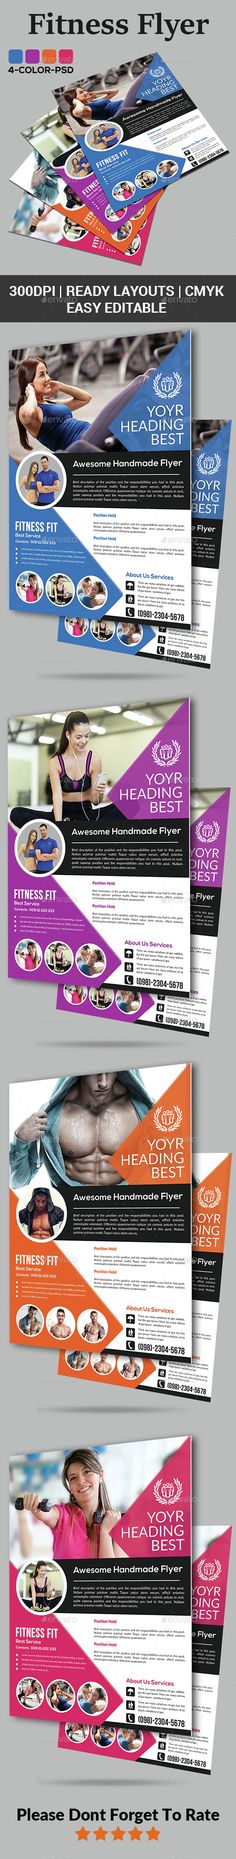 Fitness Flyer Template PSD. Download here: http://graphicriver.net/item/fitness-flyer/15111373?ref=ksioks